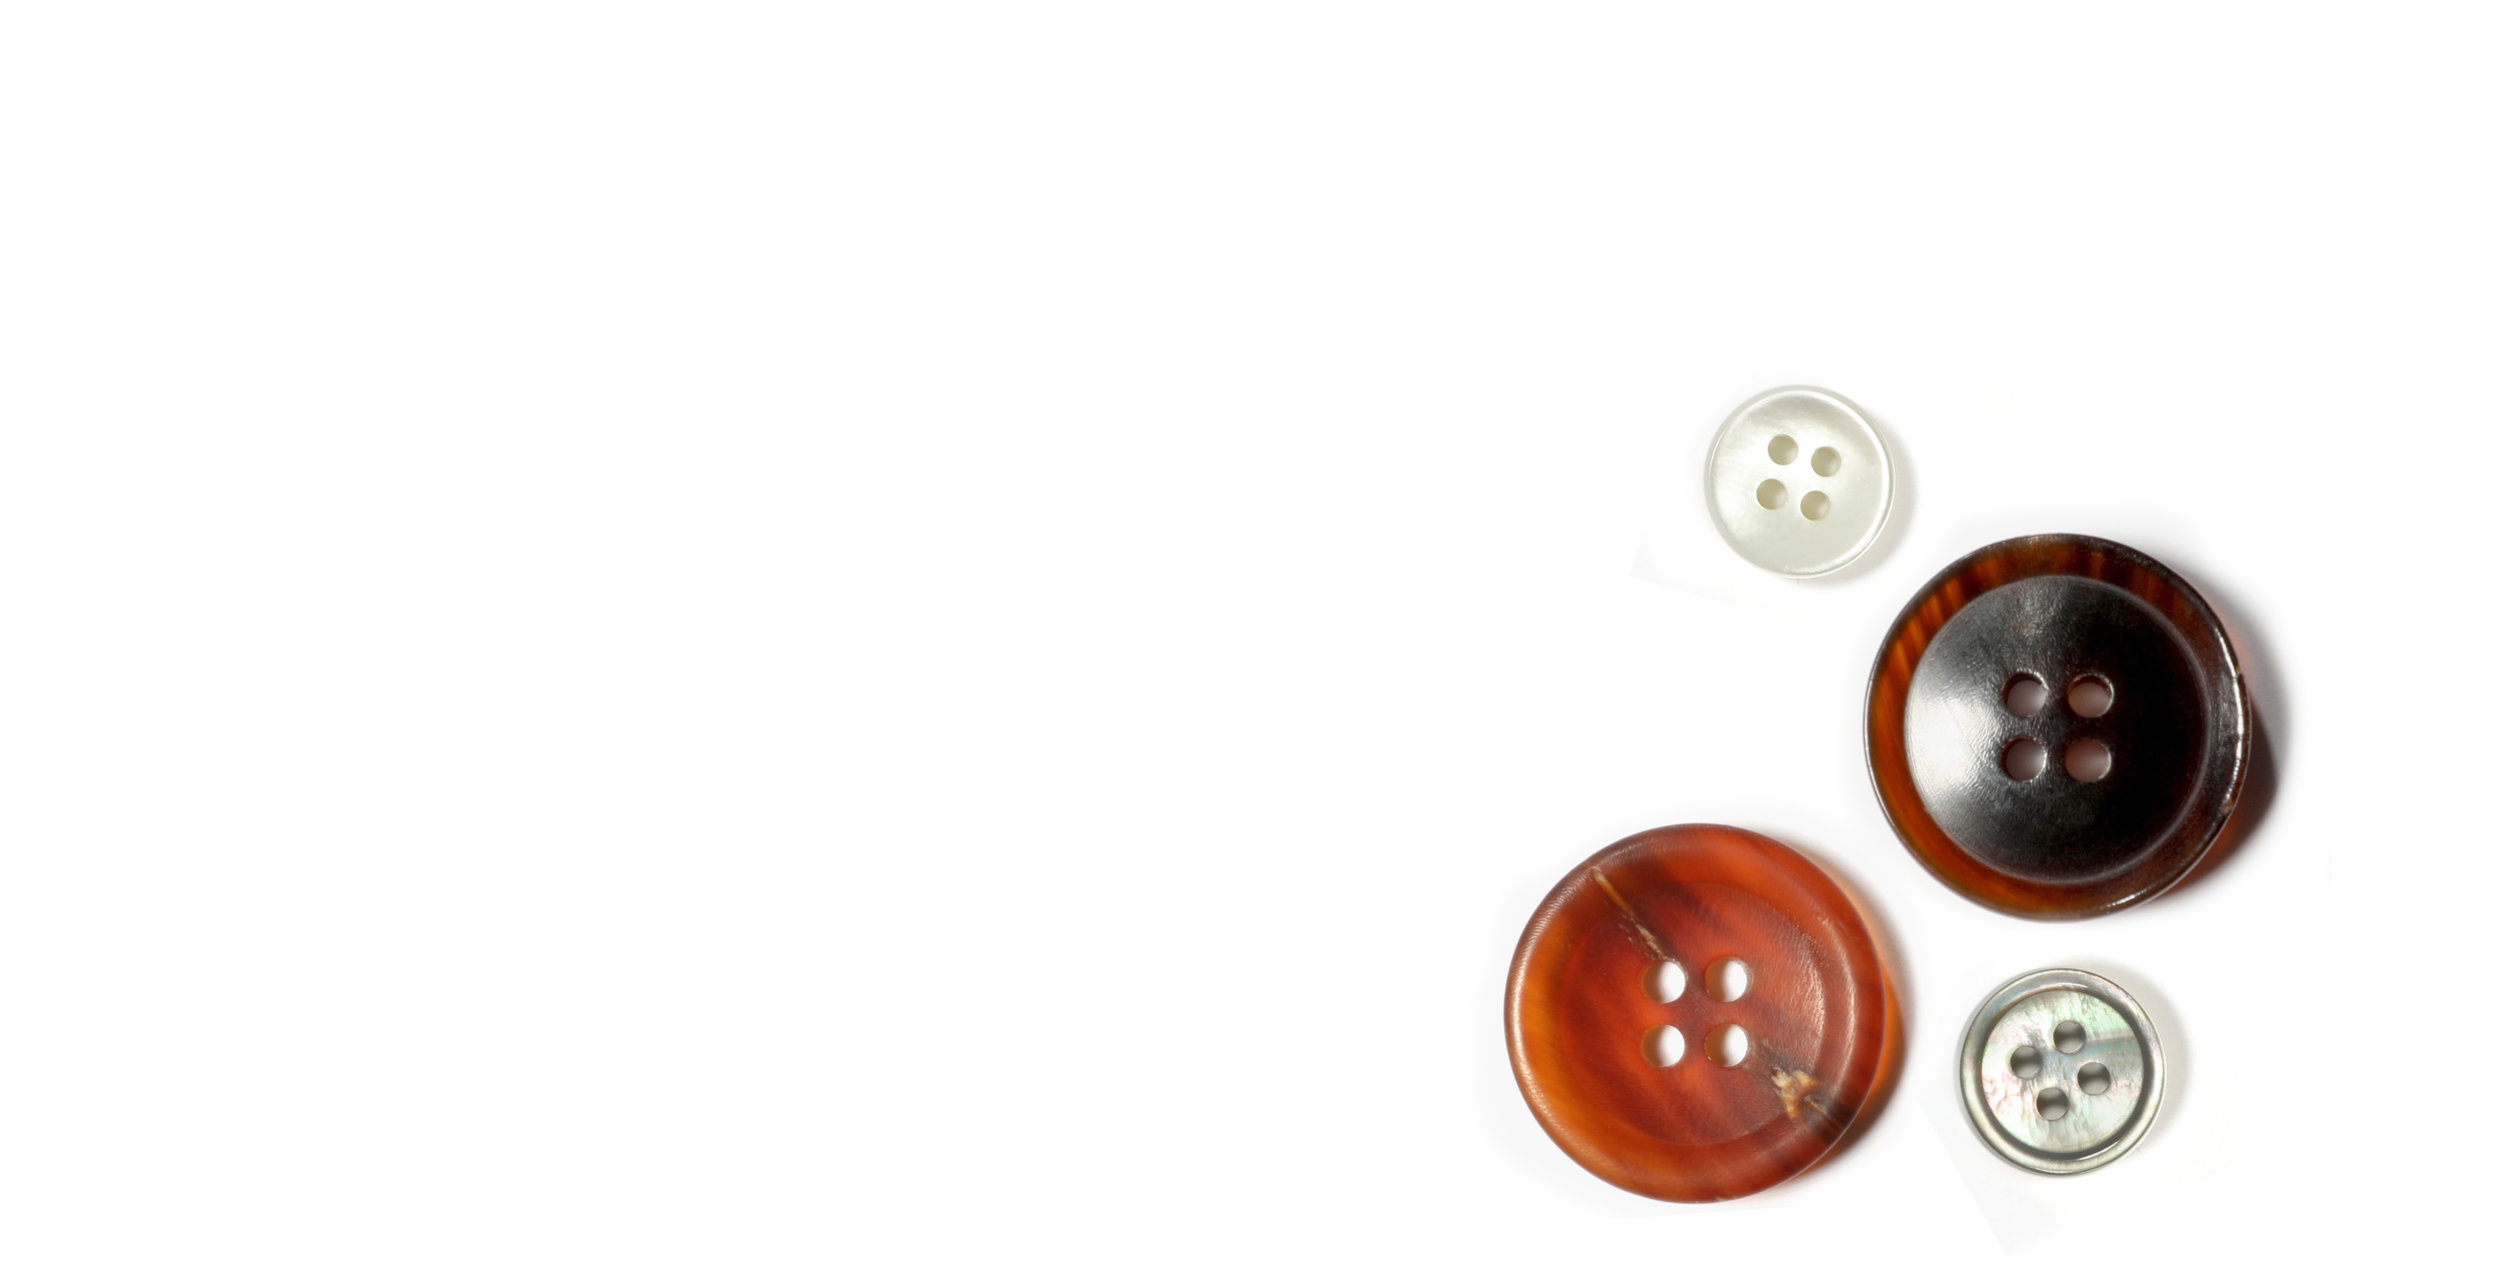 Quality Buttons - We offer a curated range of natural horn, mother of pearl and bone button options for a distinctive finish.